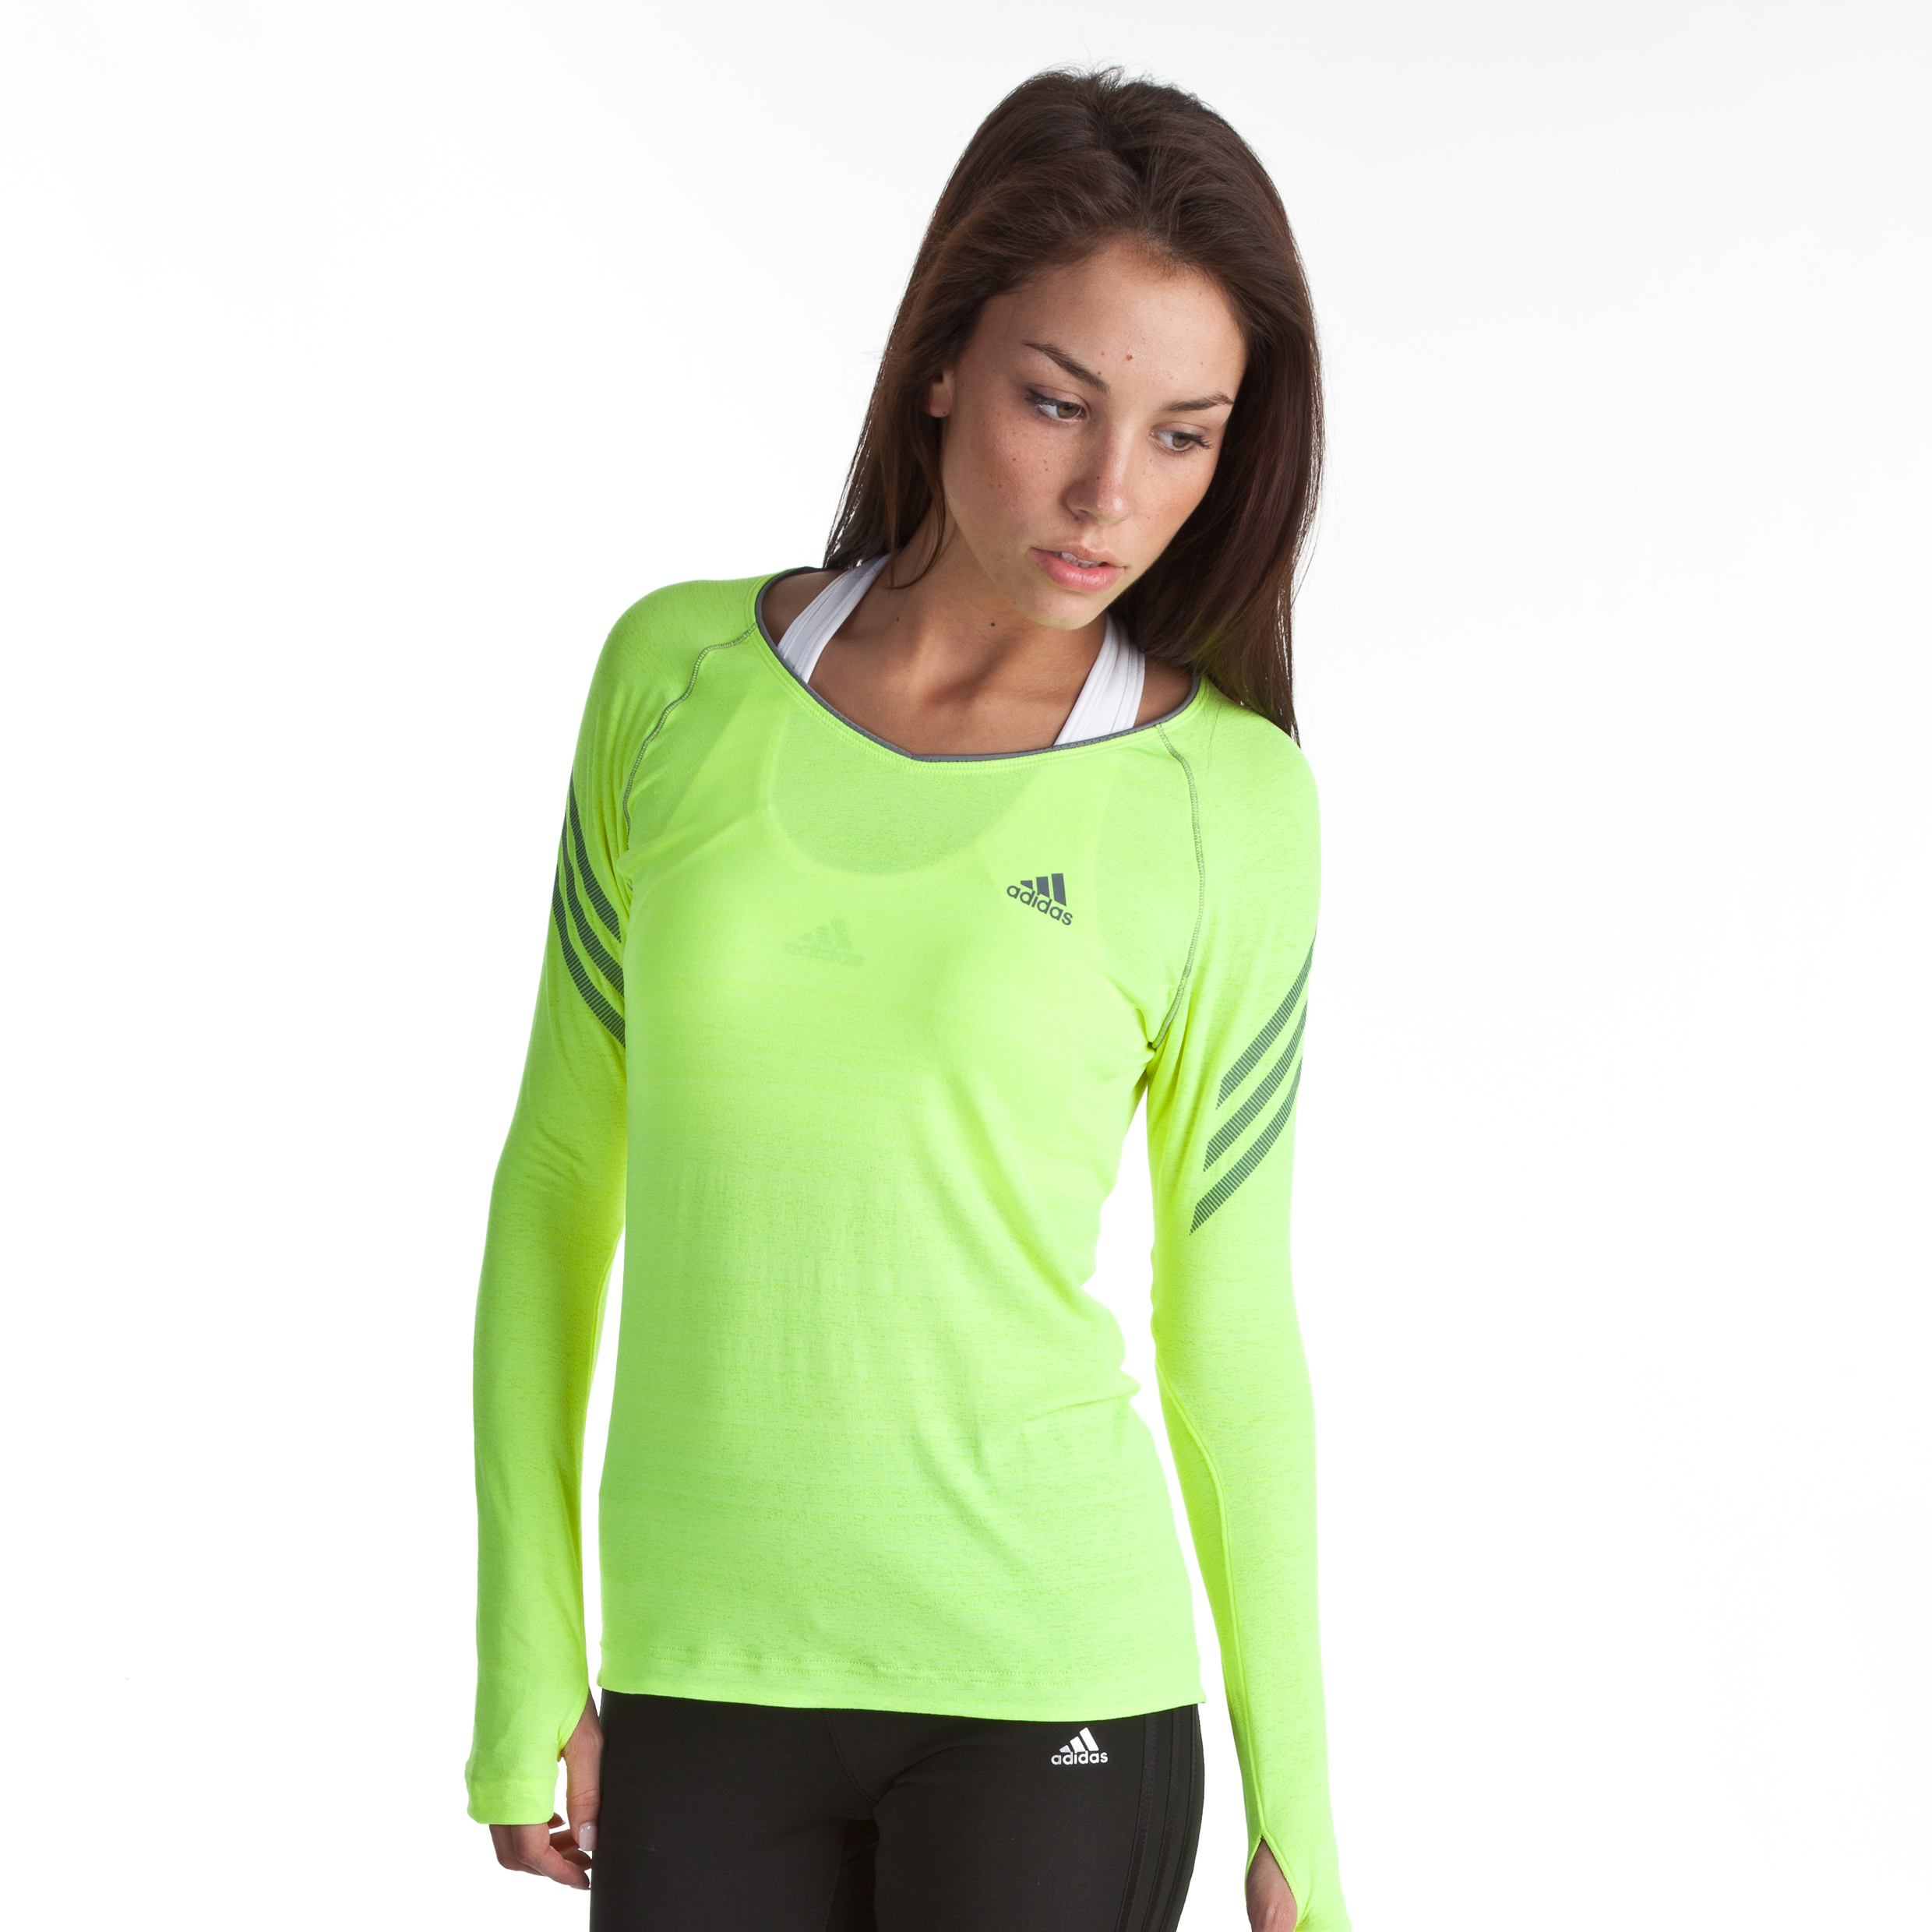 Adidas Supernova Long Sleeve T-Shirt - Womens